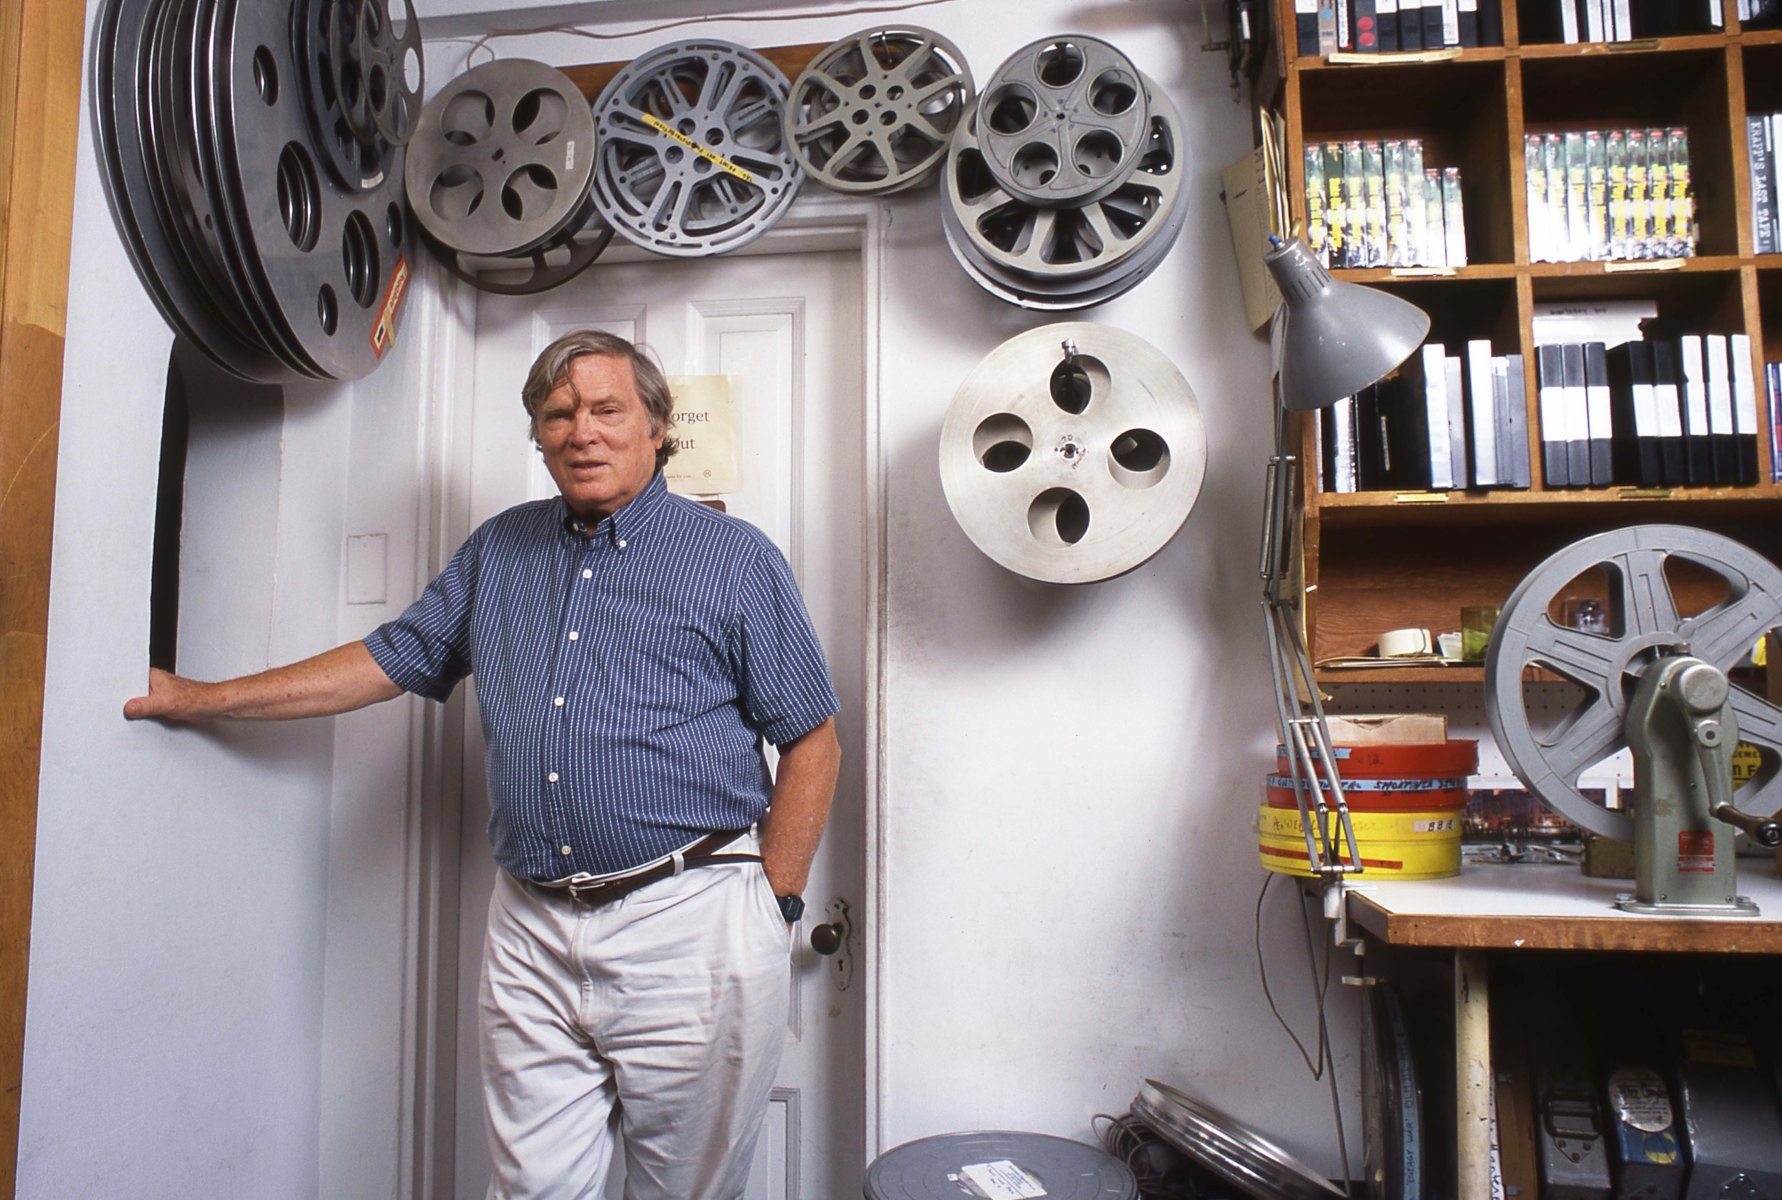 Film director D.A Pennebaker in 1995 (Photo by David Corio/Michael Ochs Archive/Getty Images)